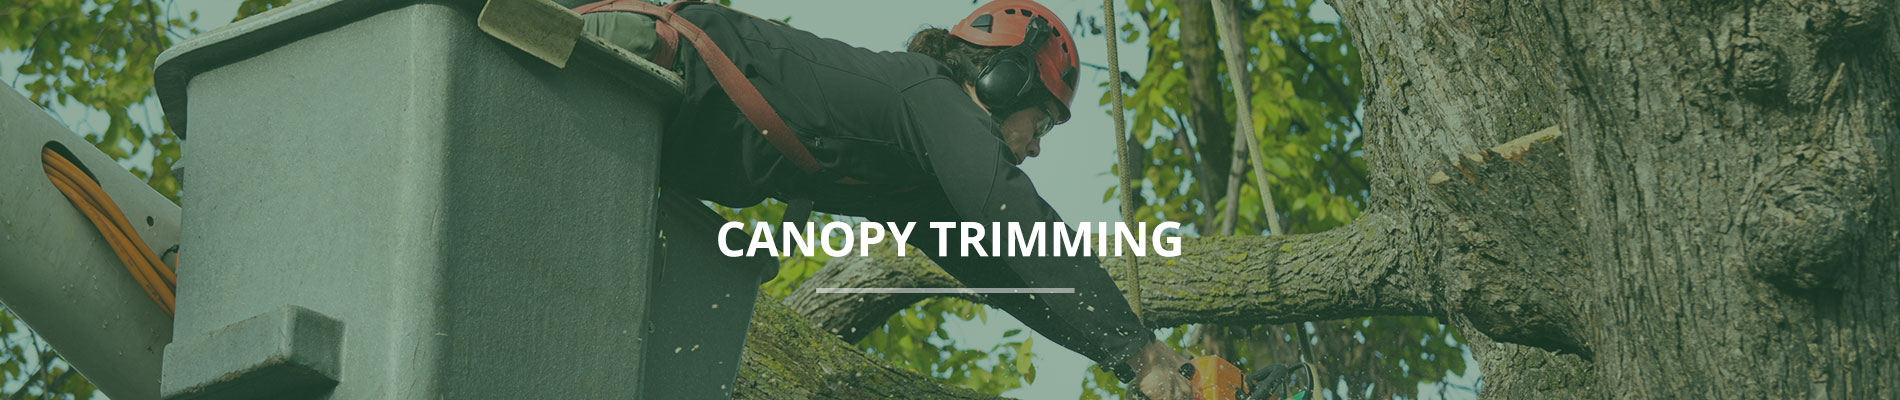 Home Tree Services Canopy Trimming & Canopy Trimming | Pruning u0026 Crown Reduction | Tree Trimming ...